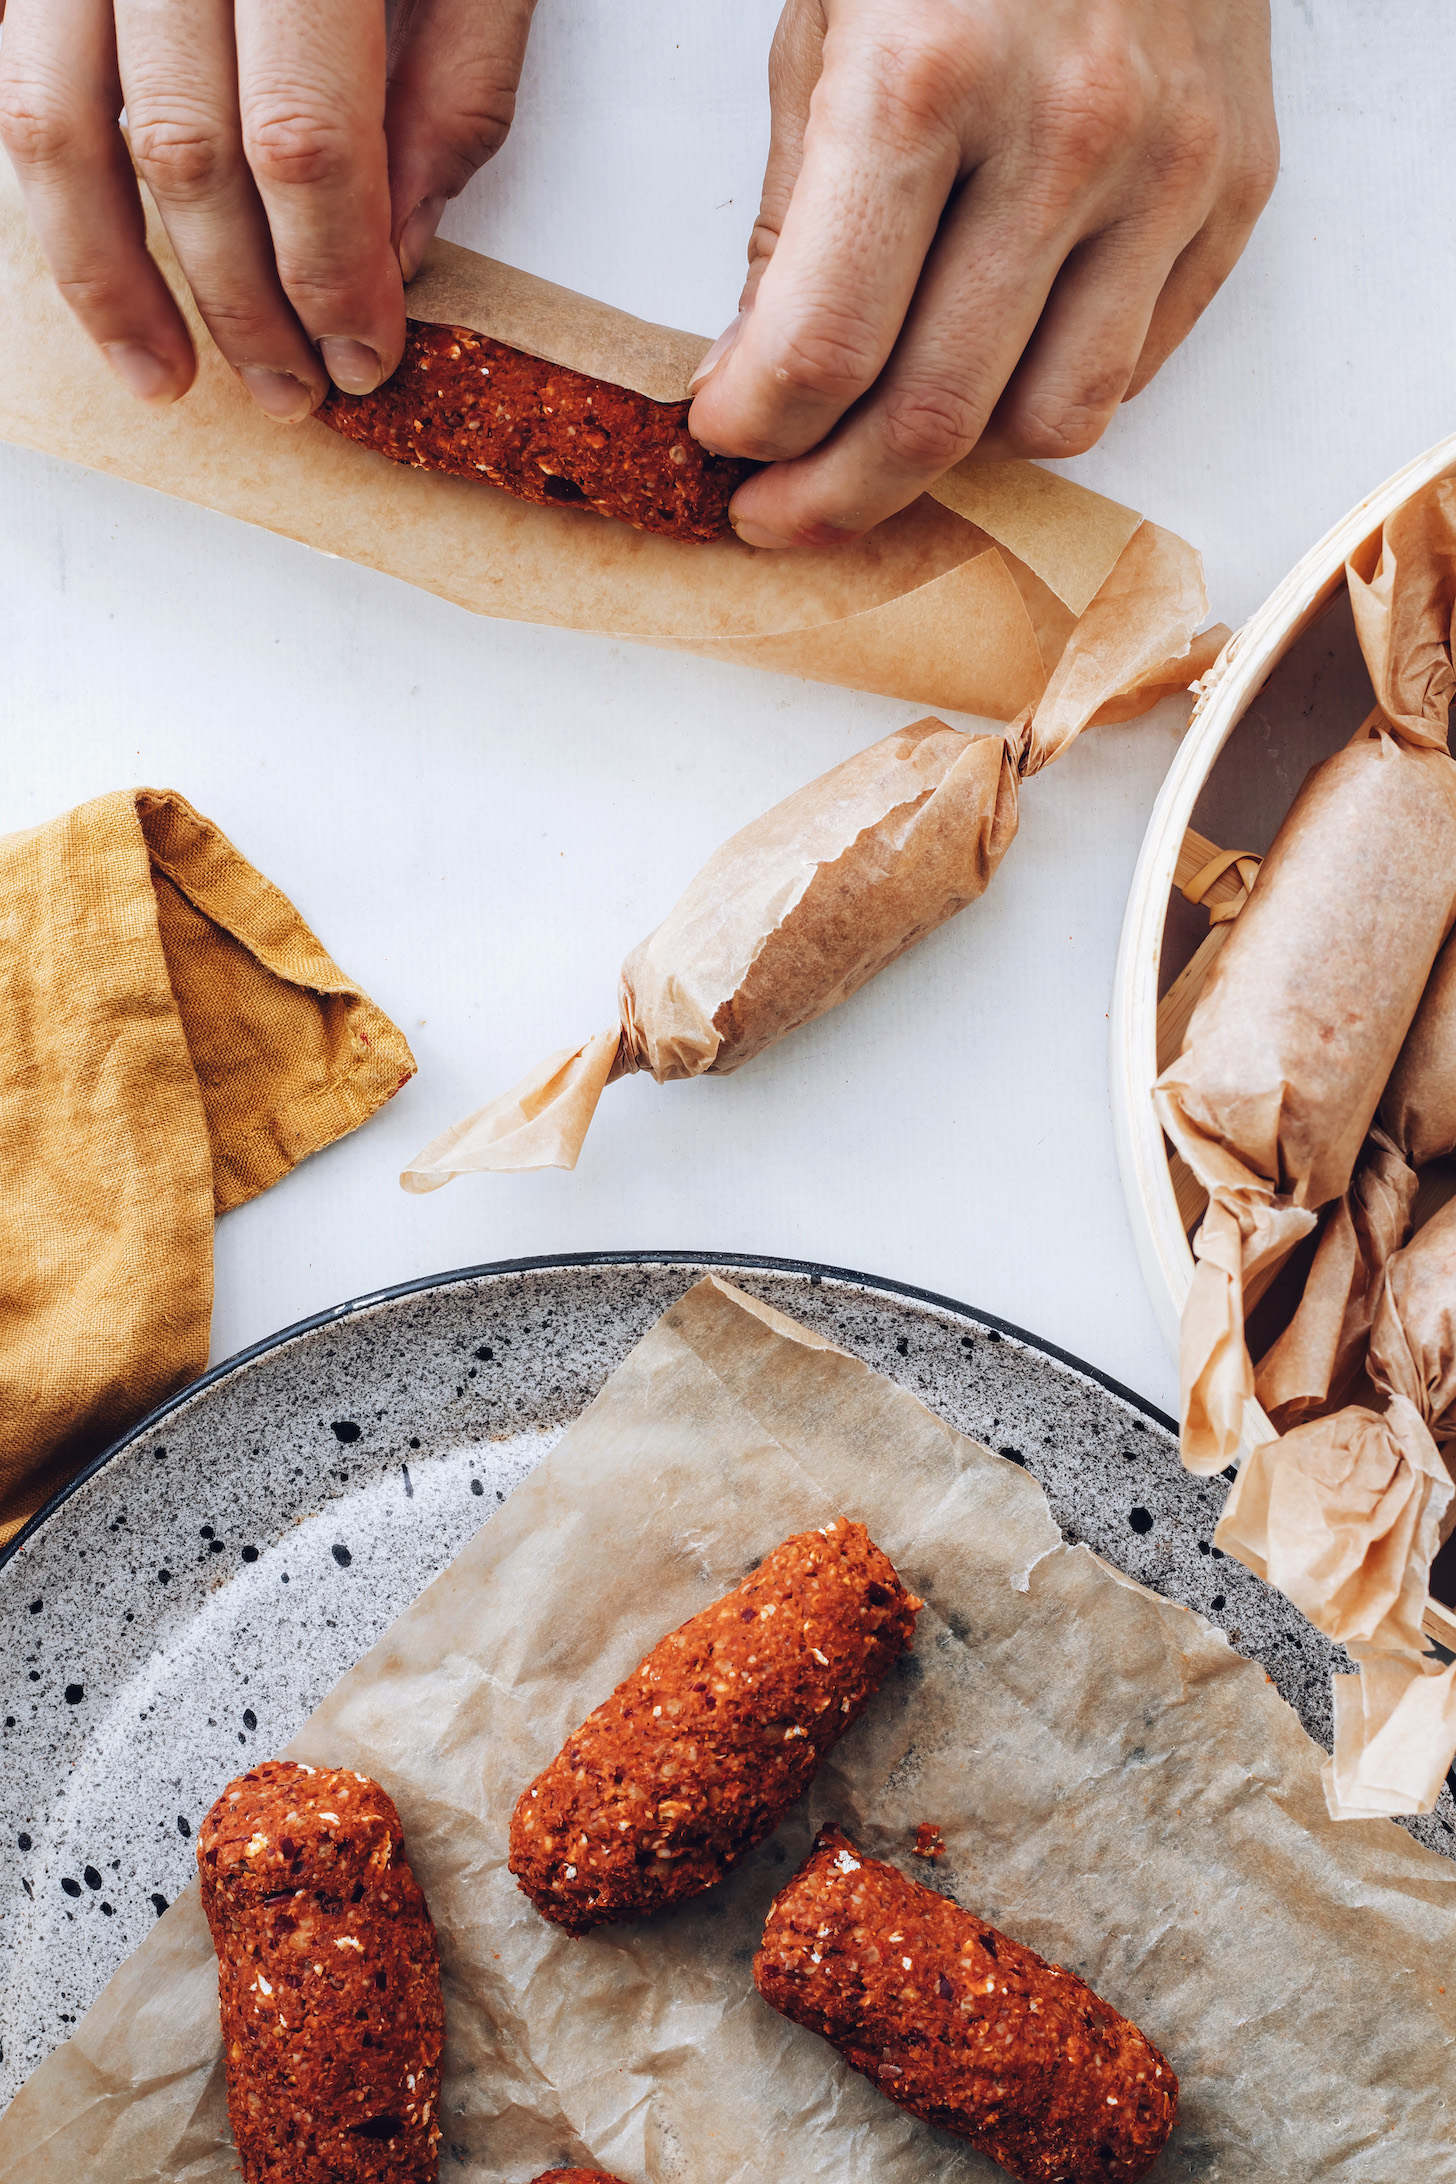 Wrapping chorizo links in parchment paper